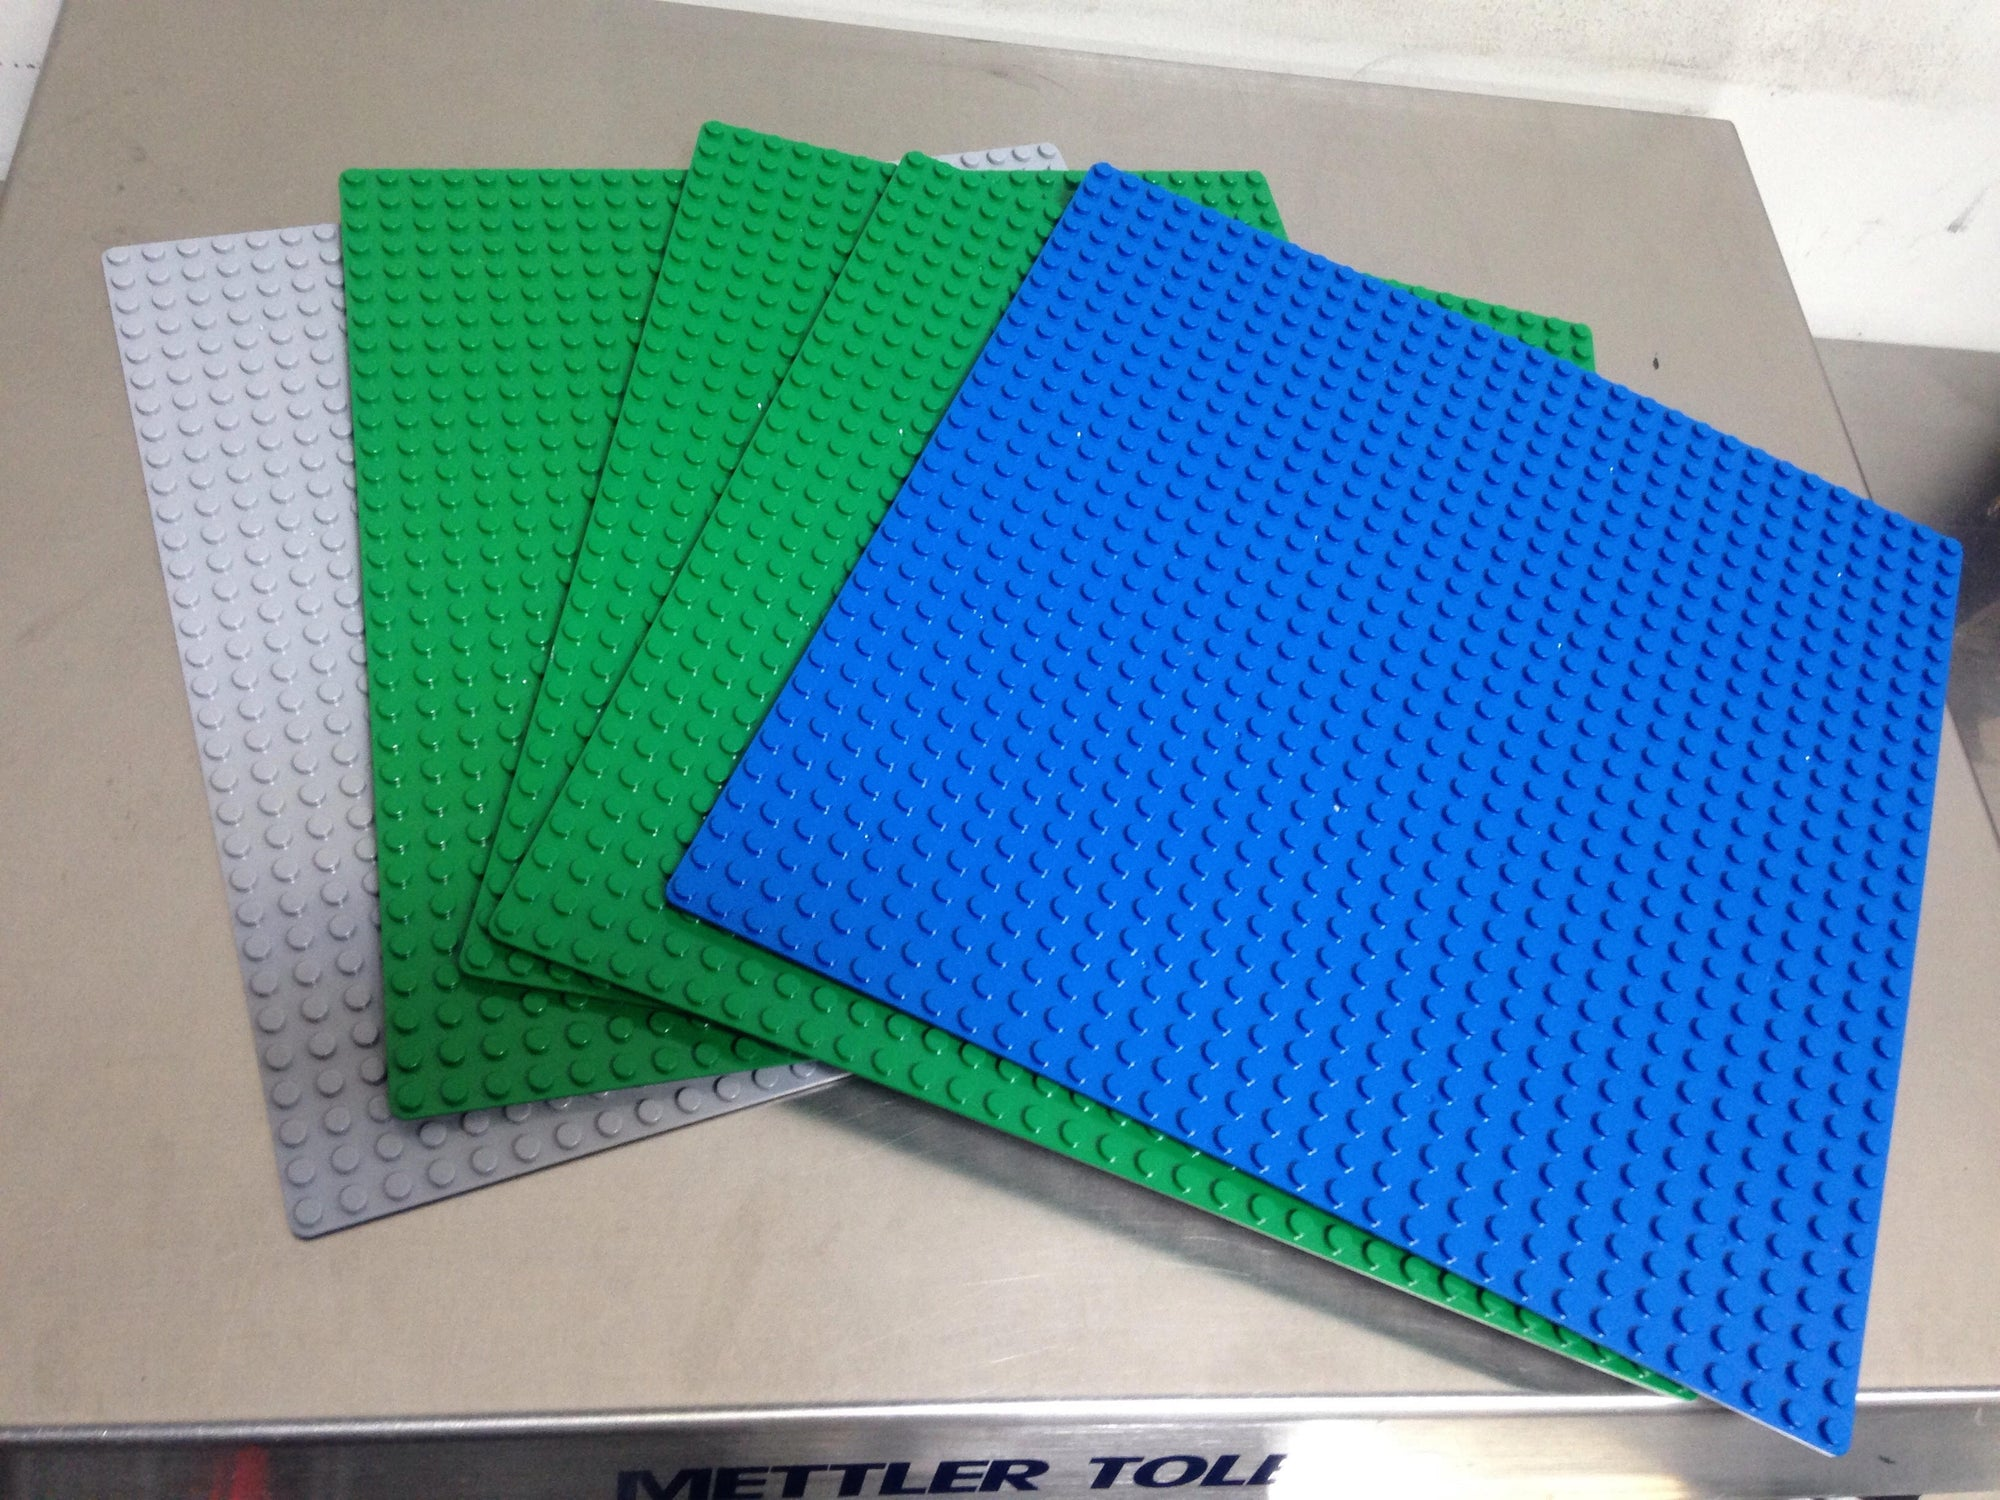 "Building Block Bricks 10"" x 10"" Baseplate Variety 5 Pack w 3M Base Sticker"